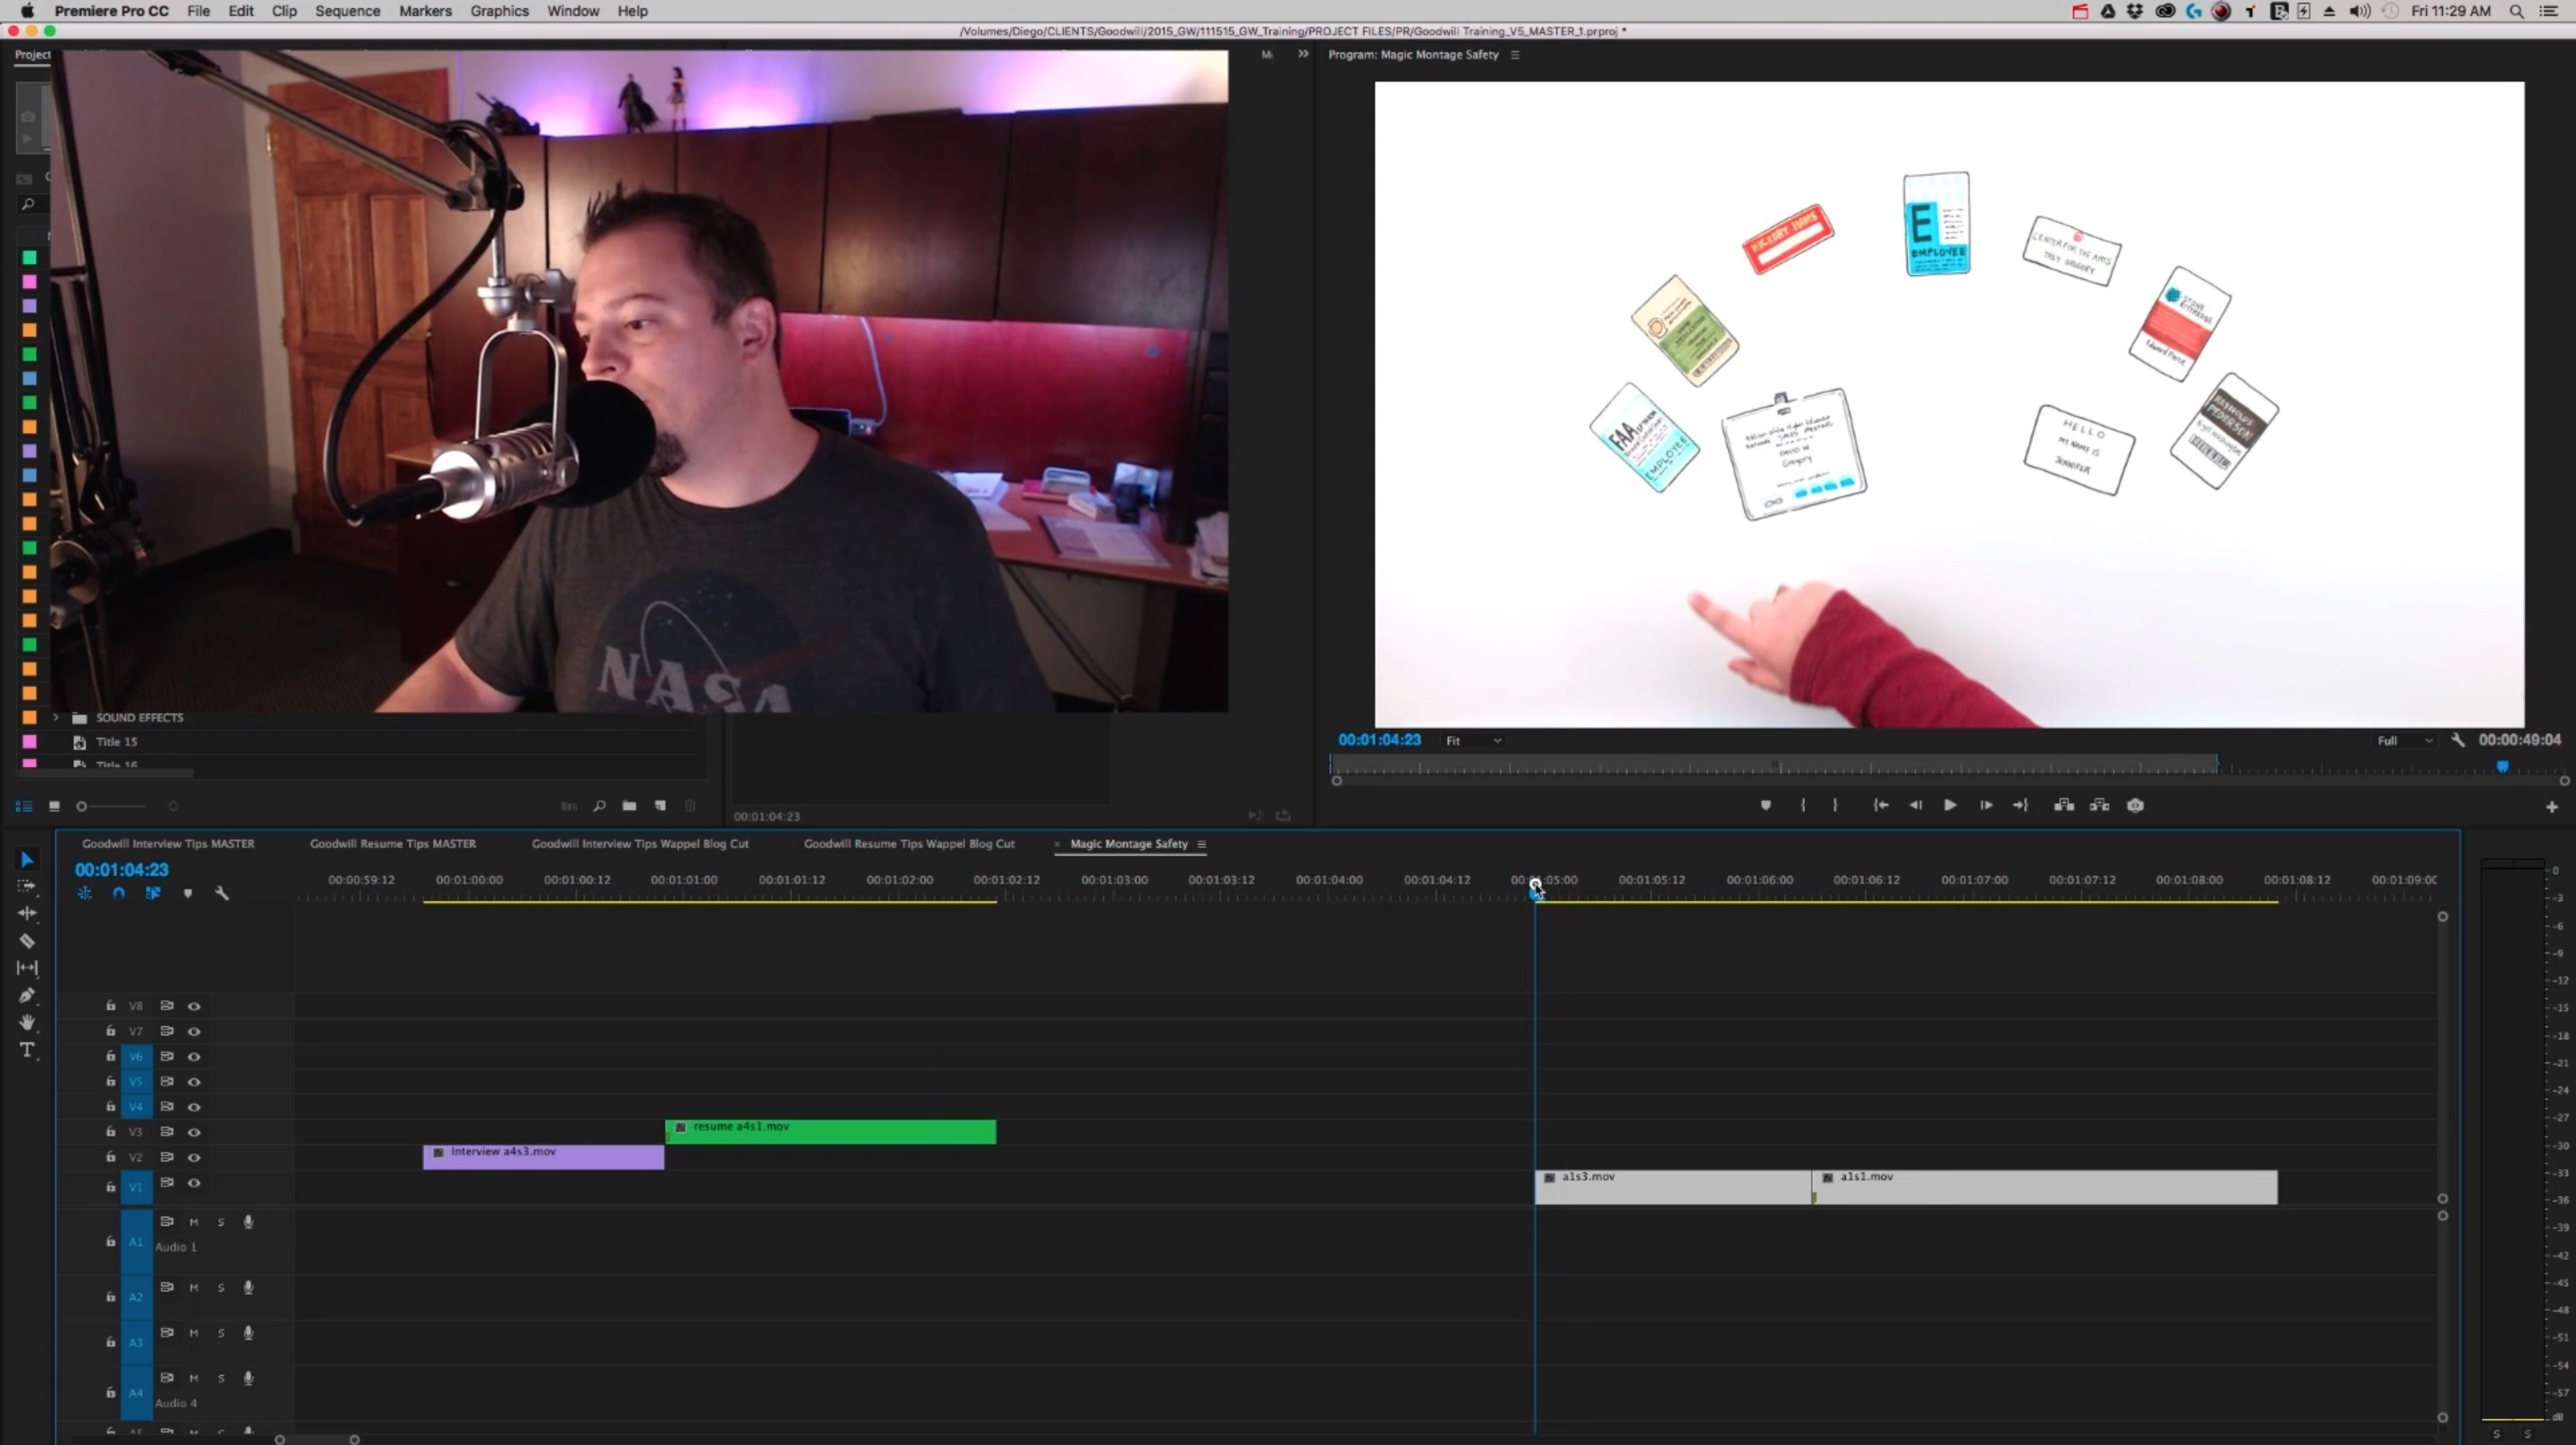 In this VFX tutorial, Trey Gregory shows you how some simple looking whiteboard magic tricks can be easy to pull off in the edit. All it takes is a little planning. If you follow these 6 steps on how to shoot a whiteboard magic effect, you'll have your own in no time!